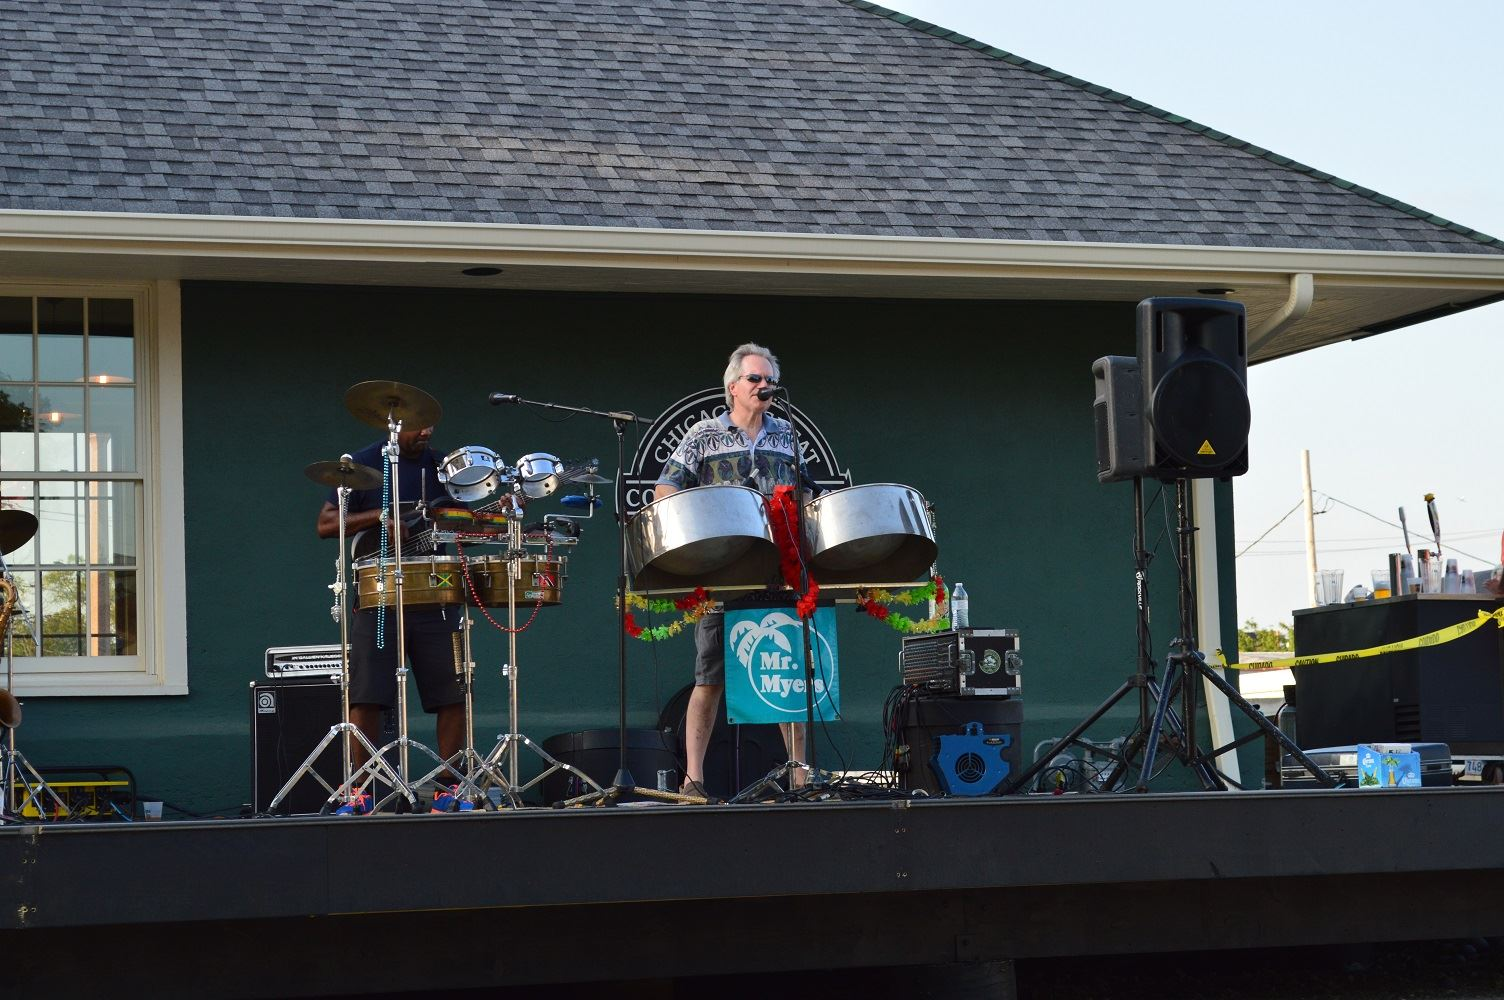 Mr. Meyers performs at Cortesi Veterans Memorial Park Aug. 4, 2016.